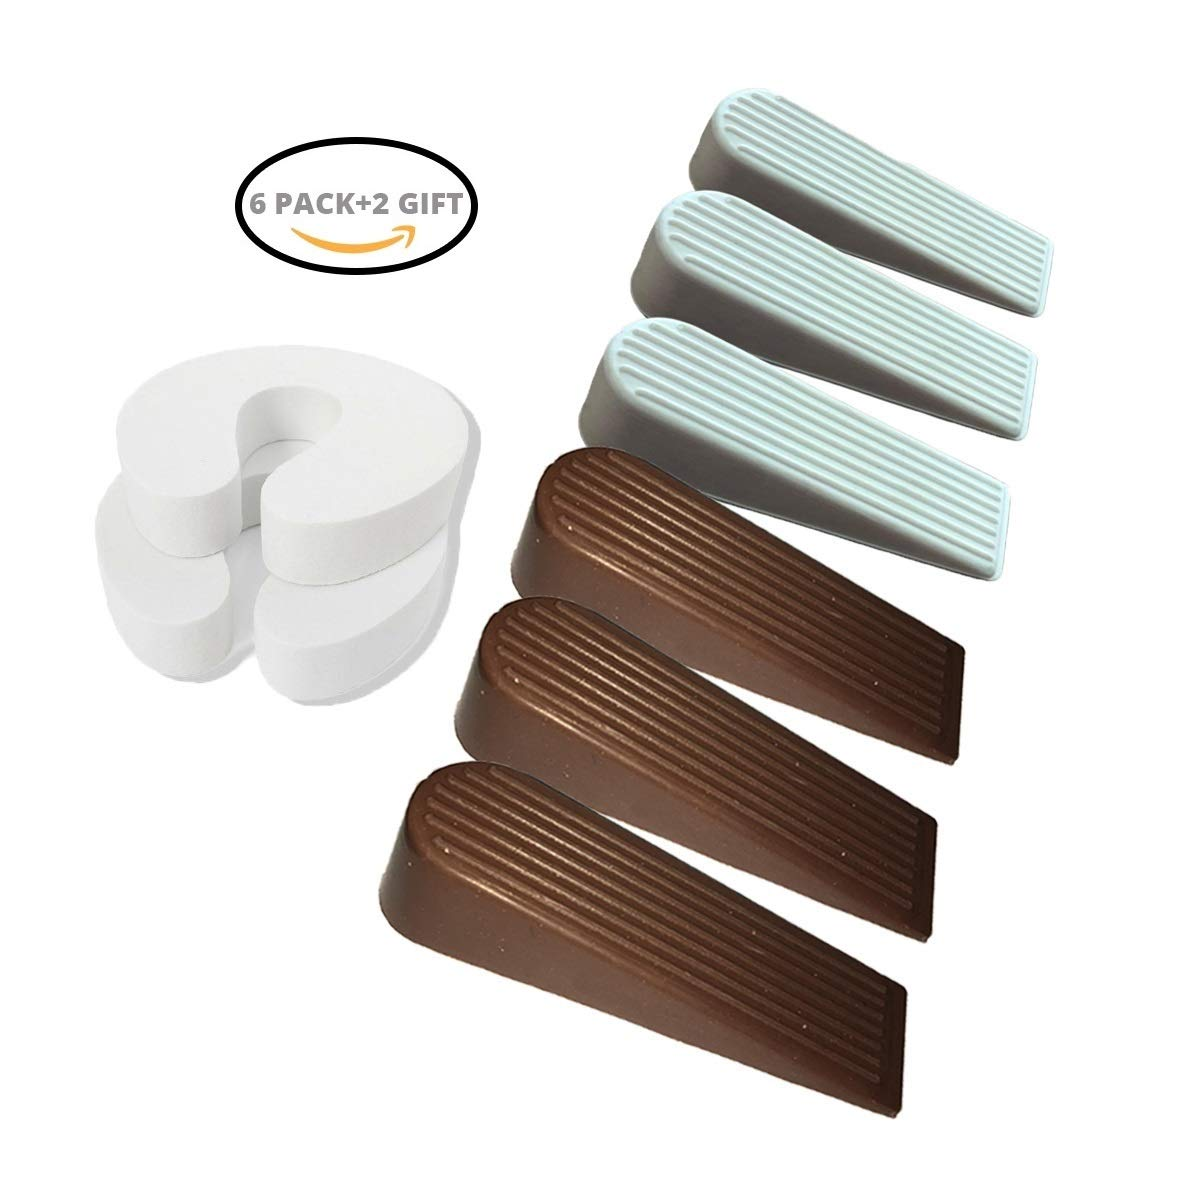 GashStore Heavy Duty Door Stop 6 Pack W/ 2 Bonus Finger Savers! Discreet Brown and White Rubber. Practical Solution to Hold a Door Open. for Use at Home or Work. for All Surfaces, Won't Leave Marks